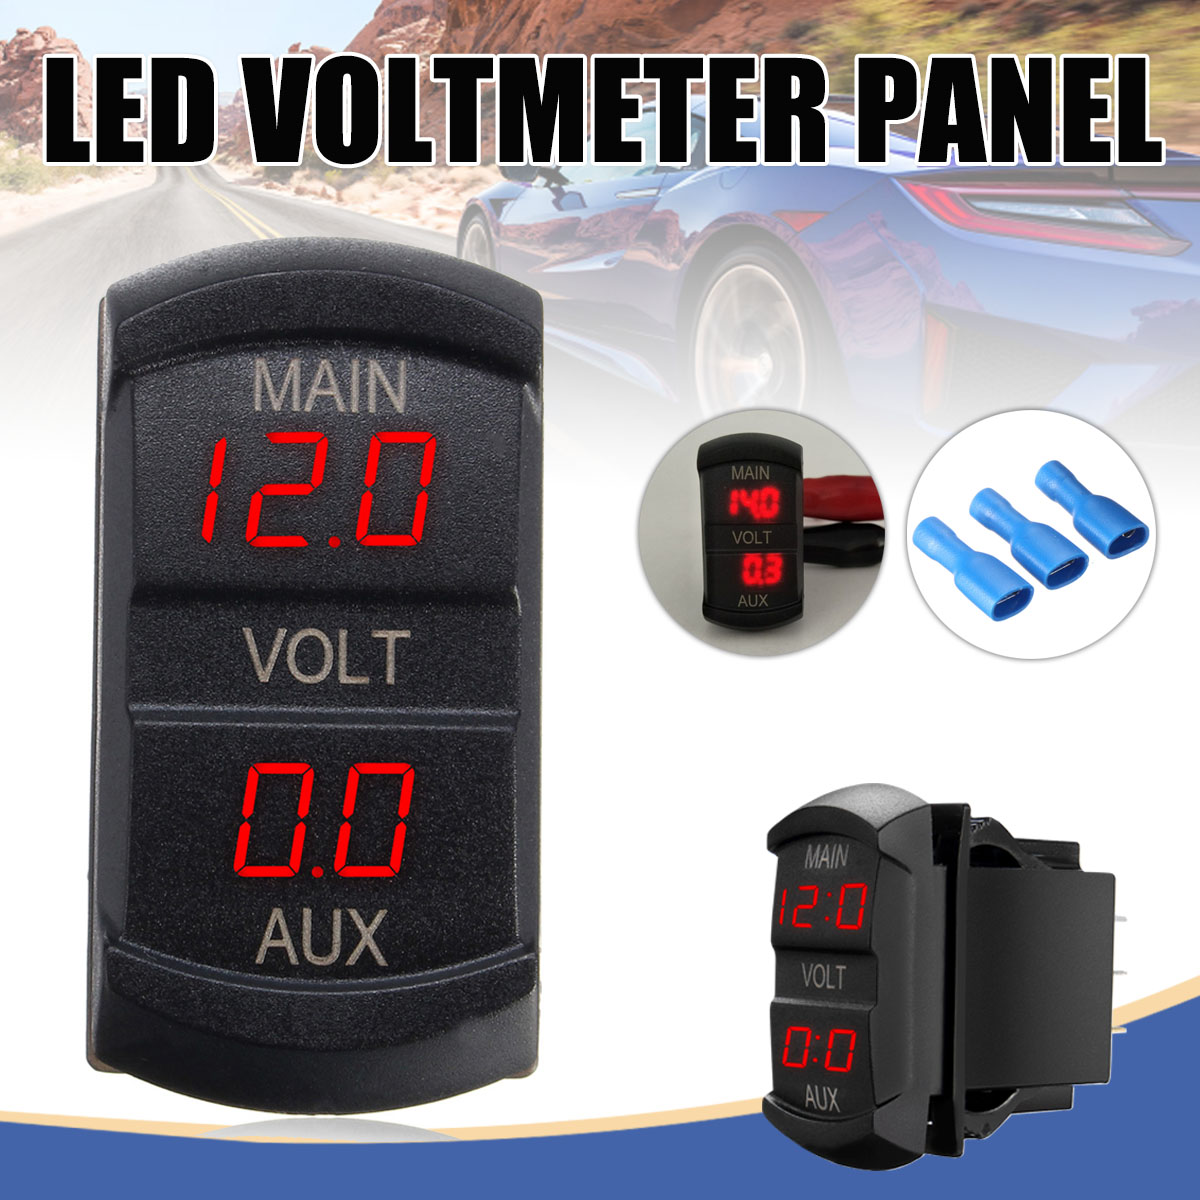 12 24v Car Boat Motorcycle Led Digital Dual Volt Meters Aux Main Battery Monitor Voltage Gauge Auto Panel Voltmeter Tester In From Automobiles